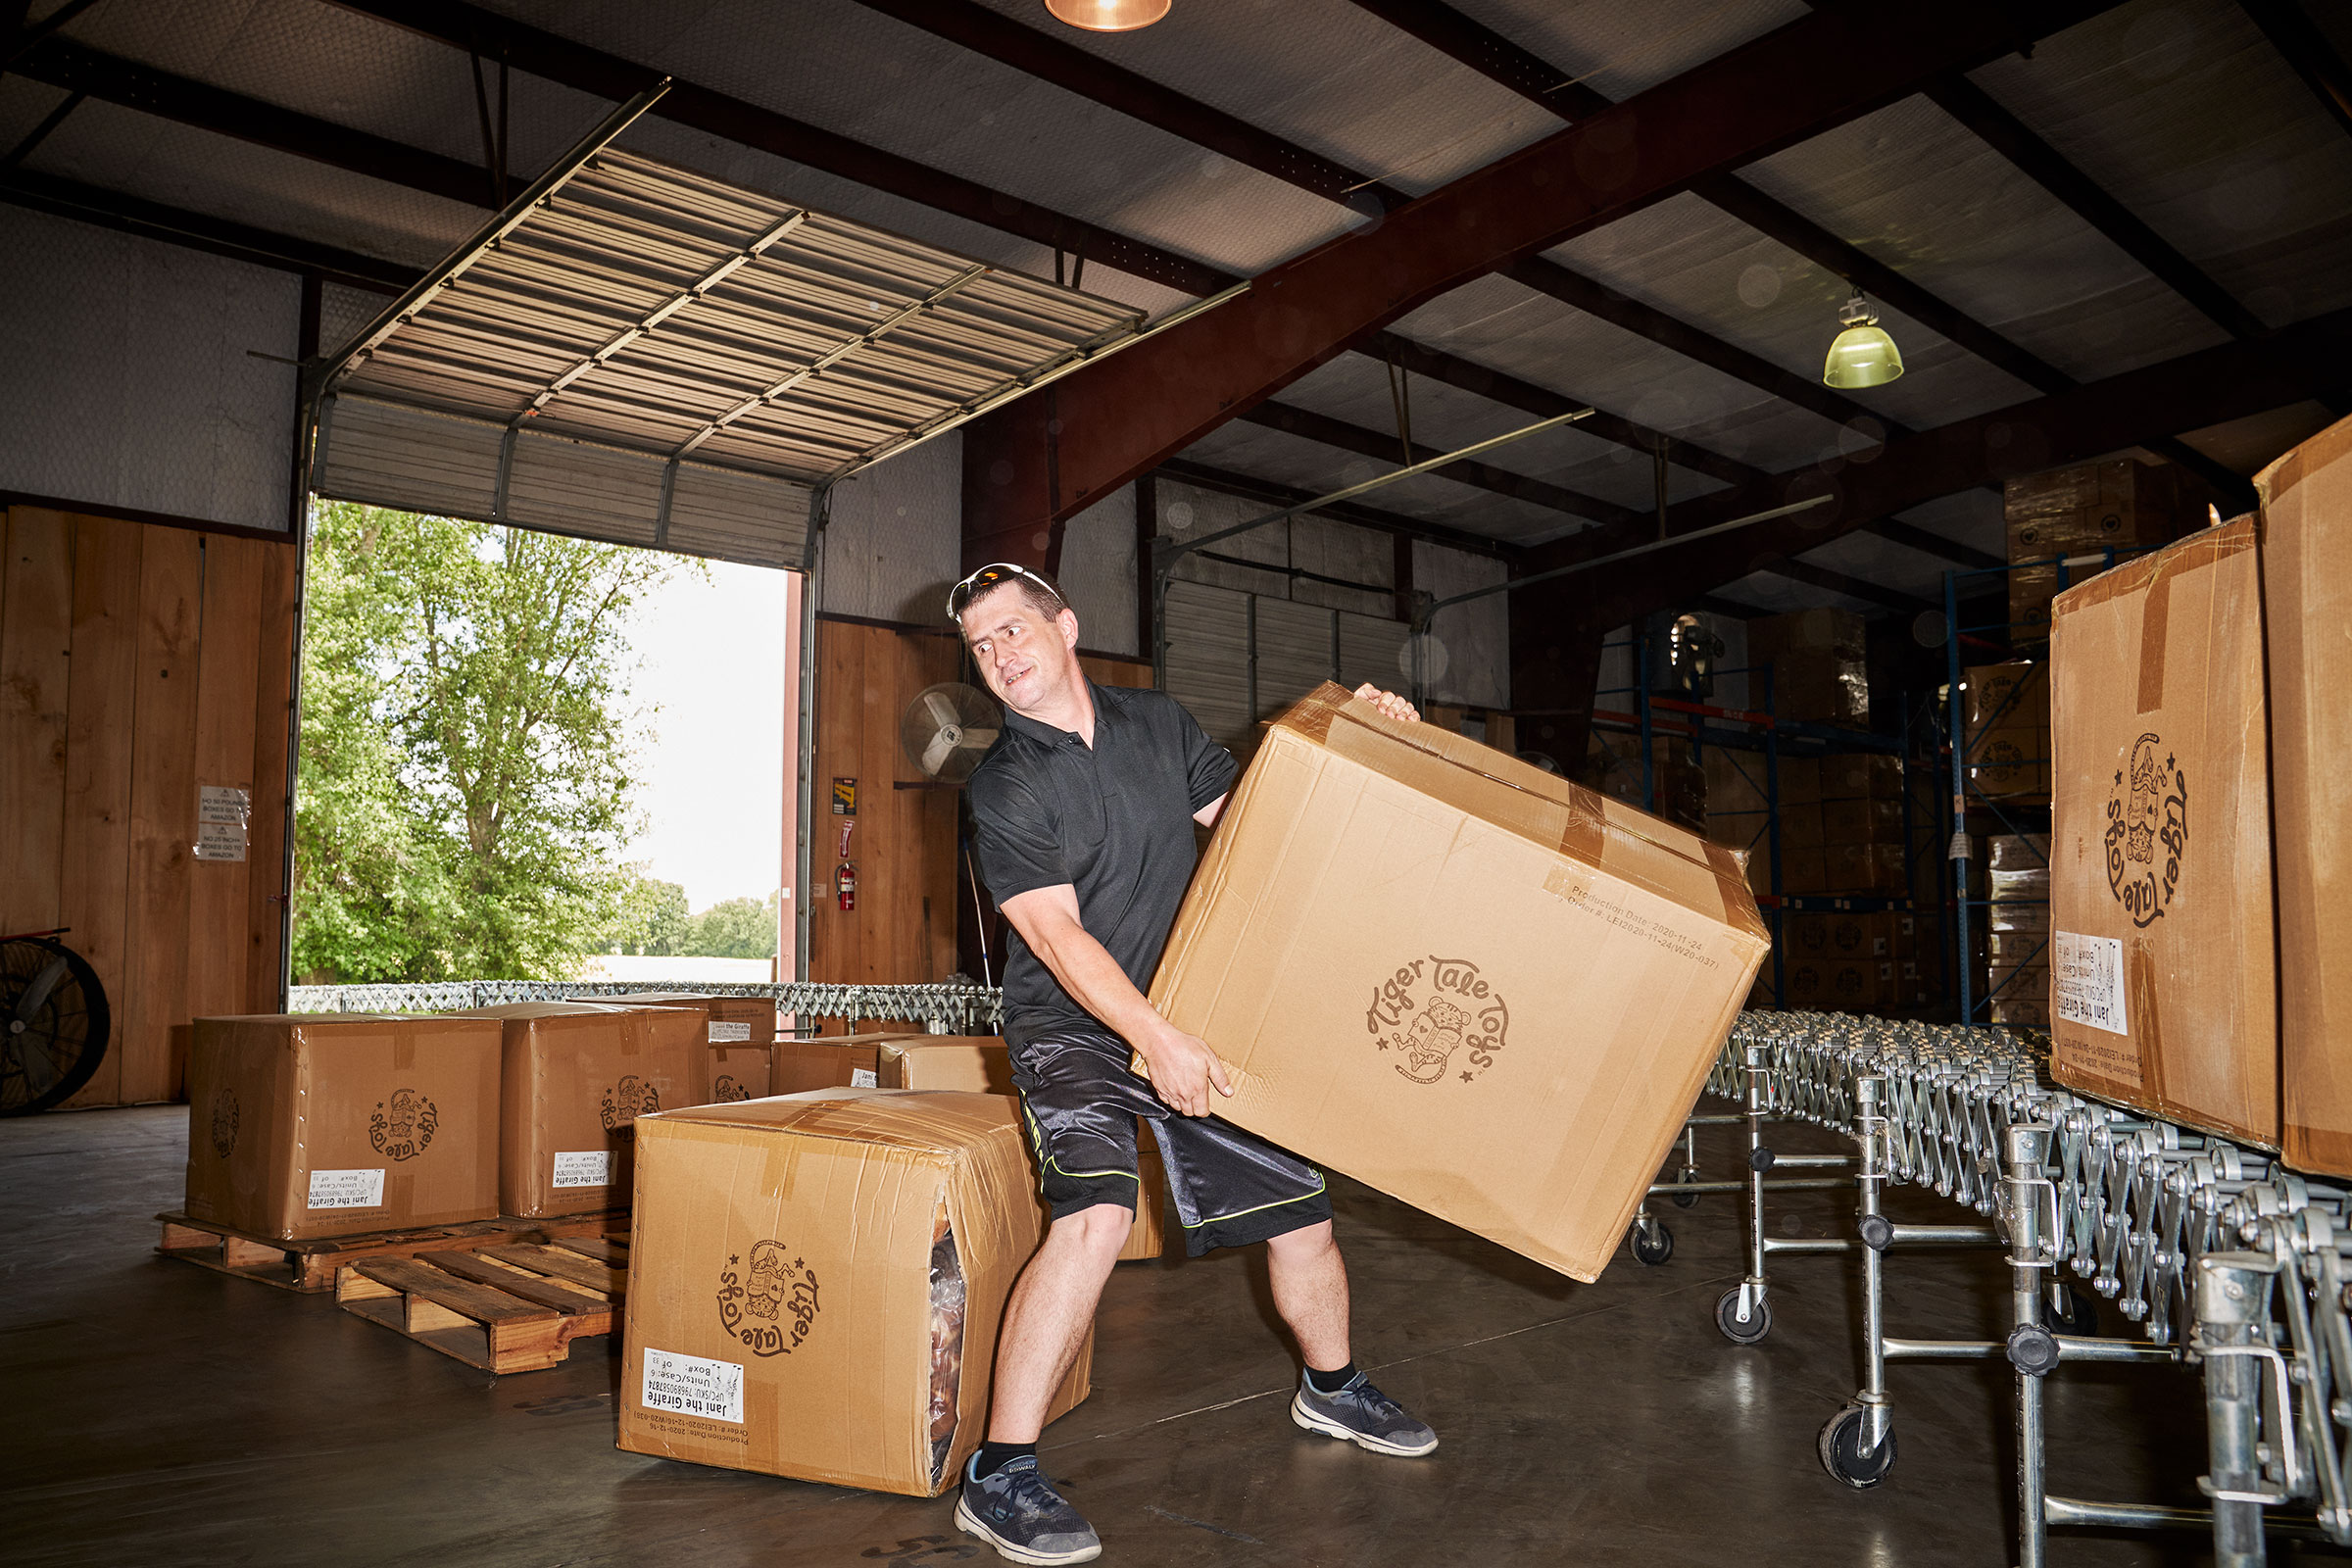 Boxes are sorted at the Viahart distribution facility in Wills Point, Texas on July 23, 2021.